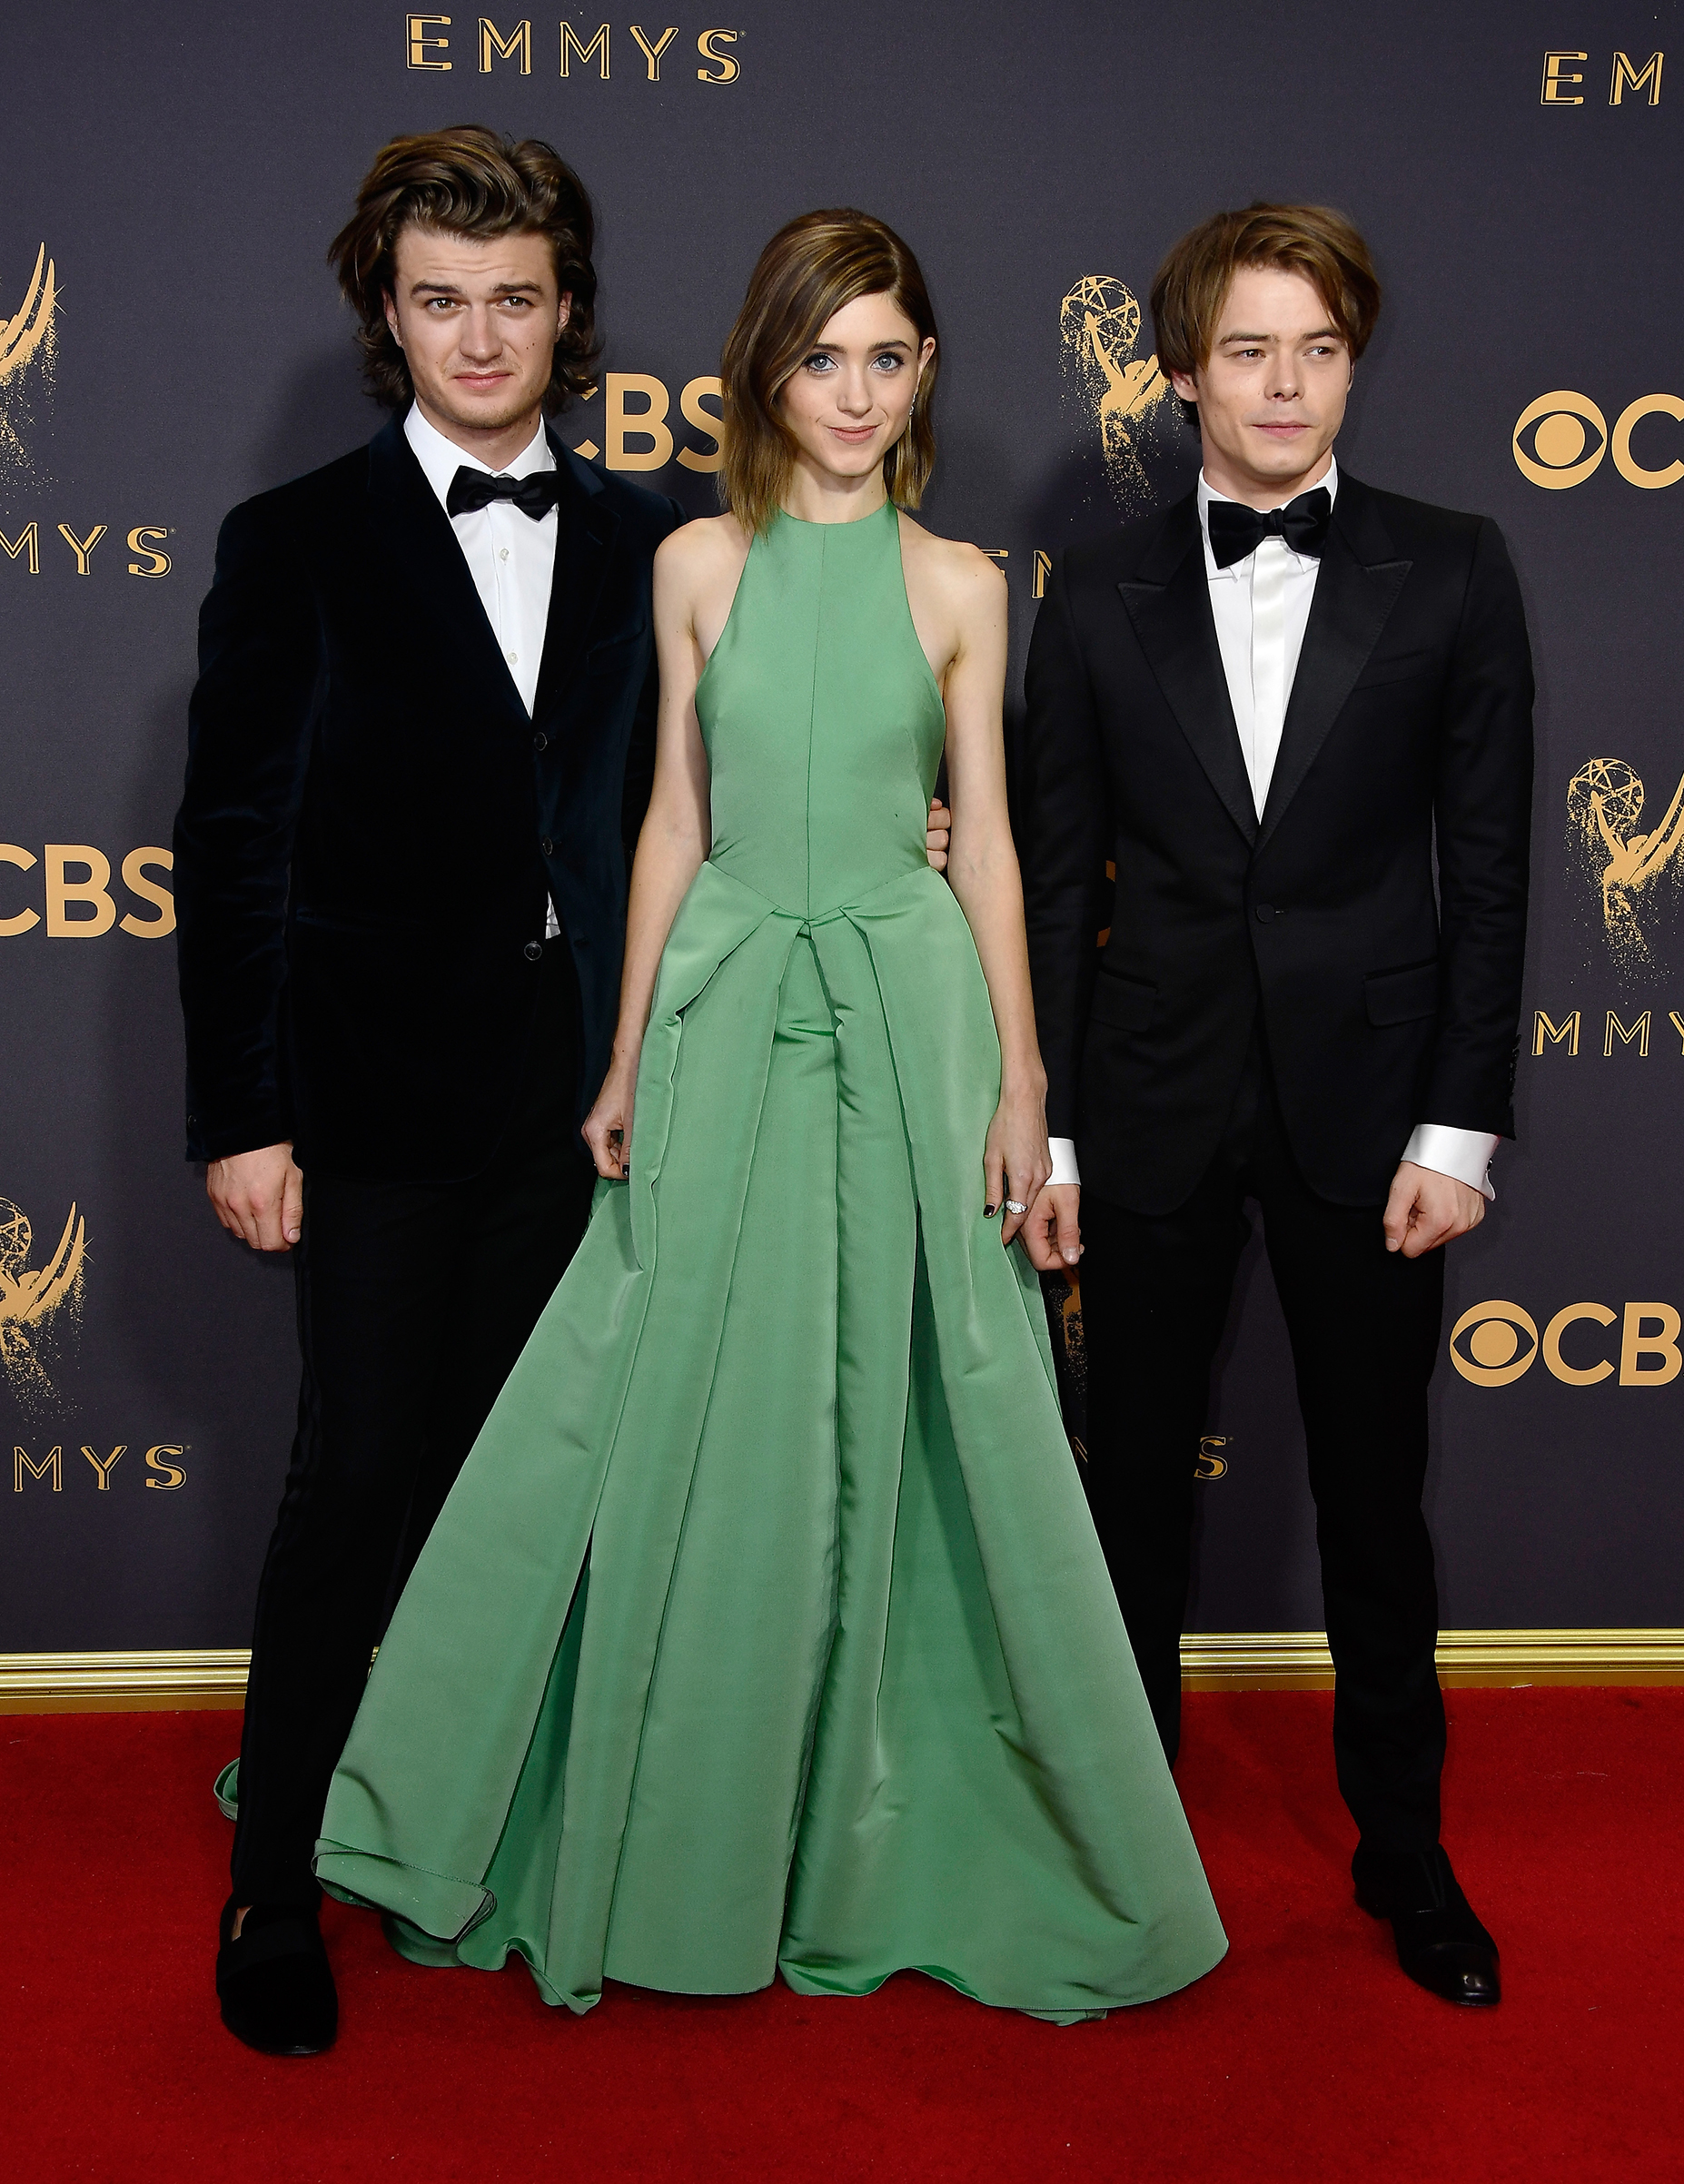 (L-R) Actors Joe Keery, Natalia Dyer and Charlie Heaton attend the 69th Annual Primetime Emmy Awards at Microsoft Theater on September 17, 2017 in Los Angeles, California.